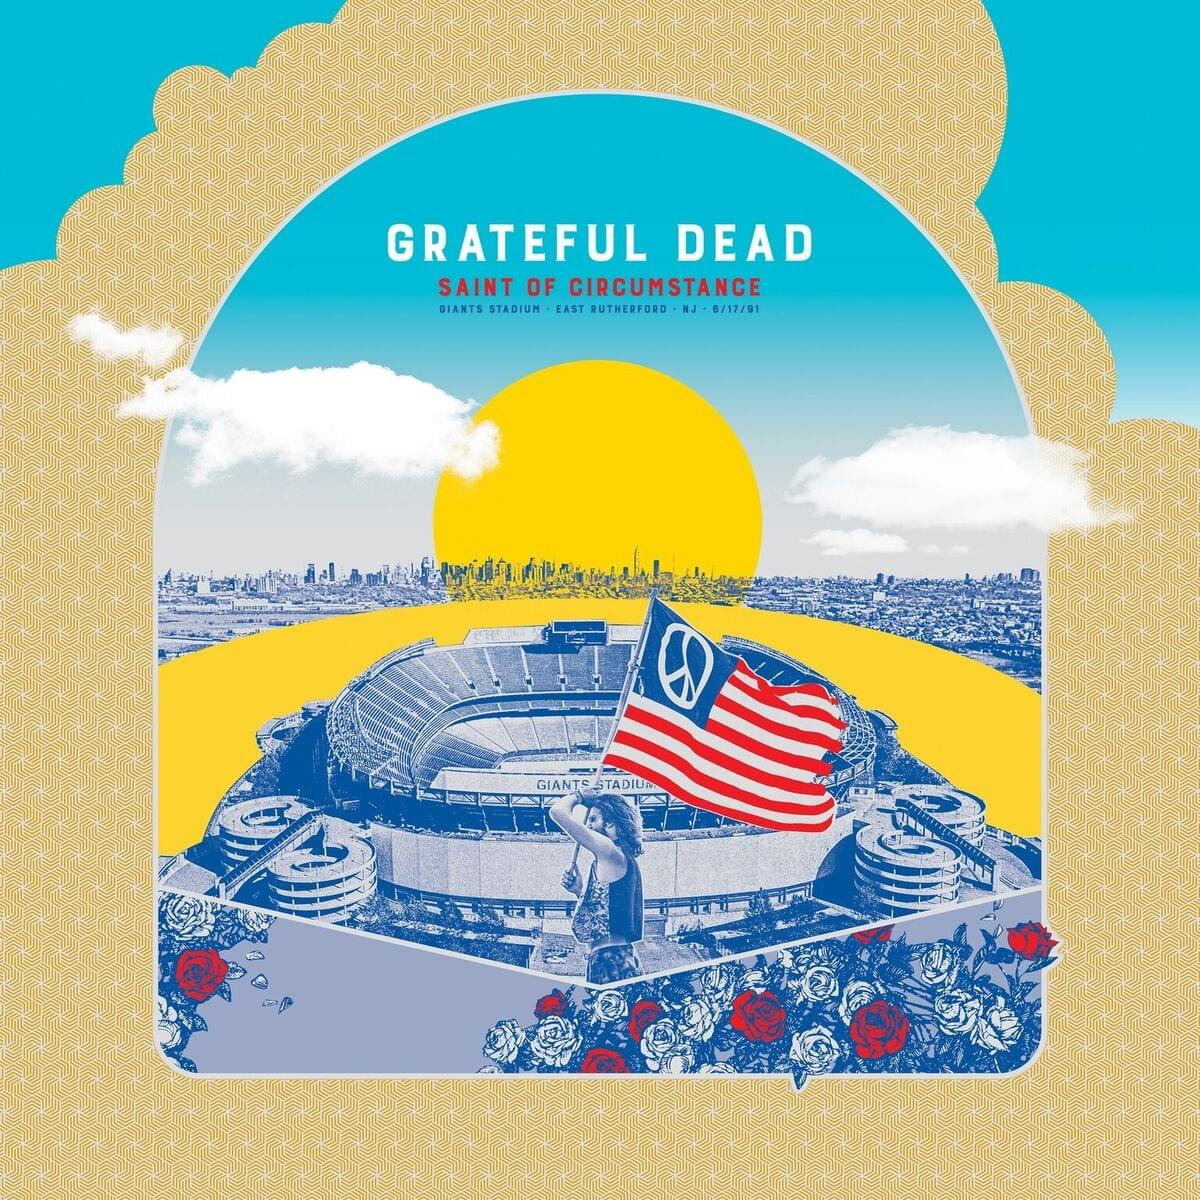 Win a 3CD Live Set from the Grateful Dead